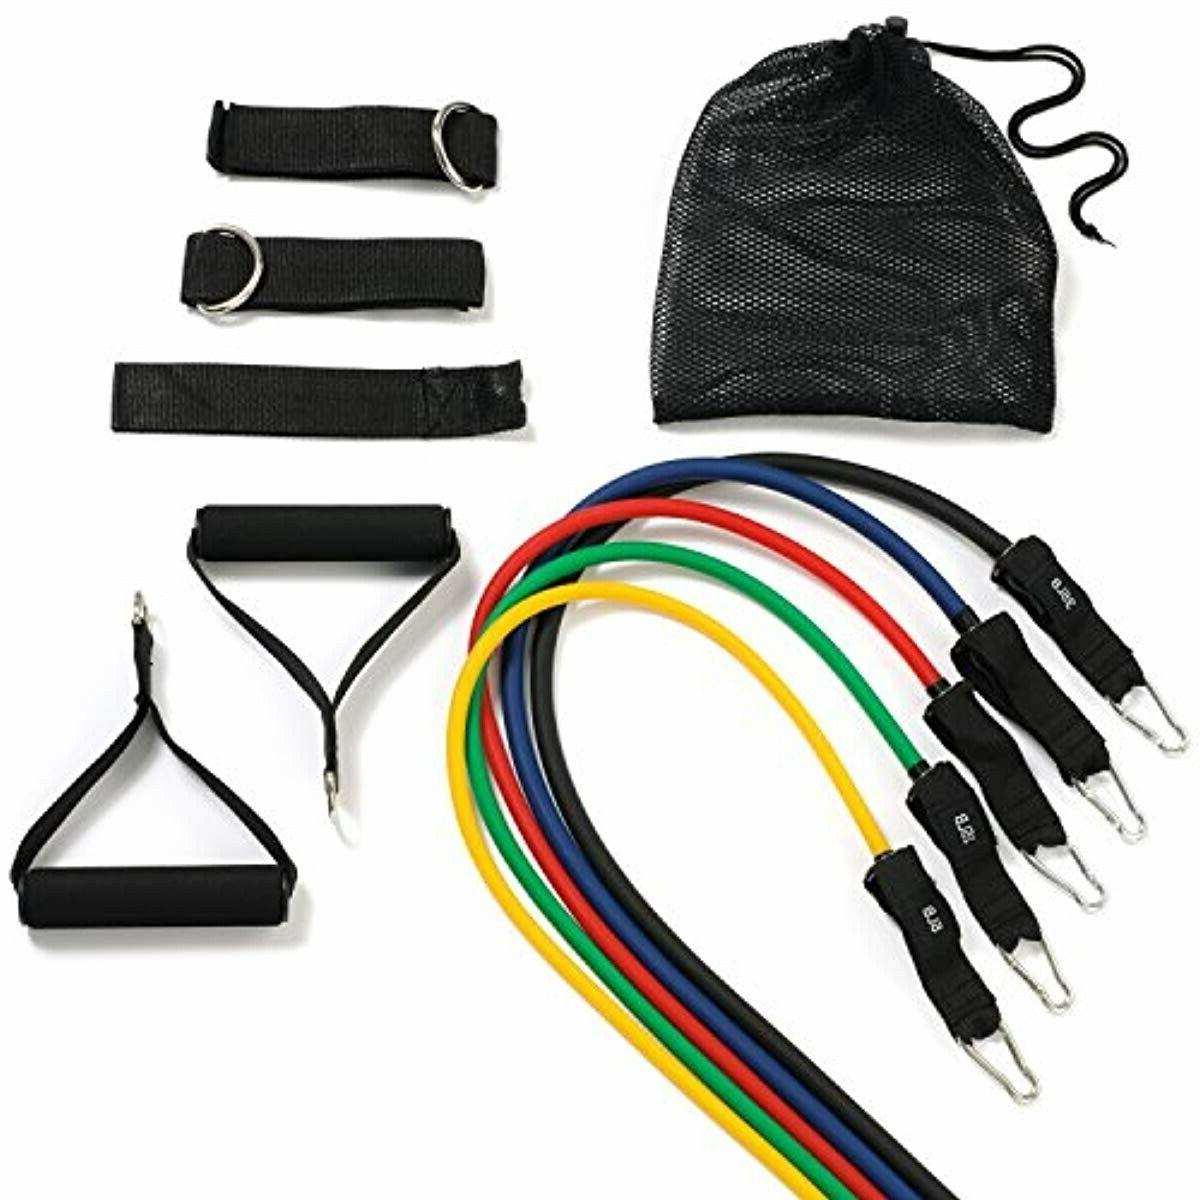 New 11PC Resistance Bands Anchor